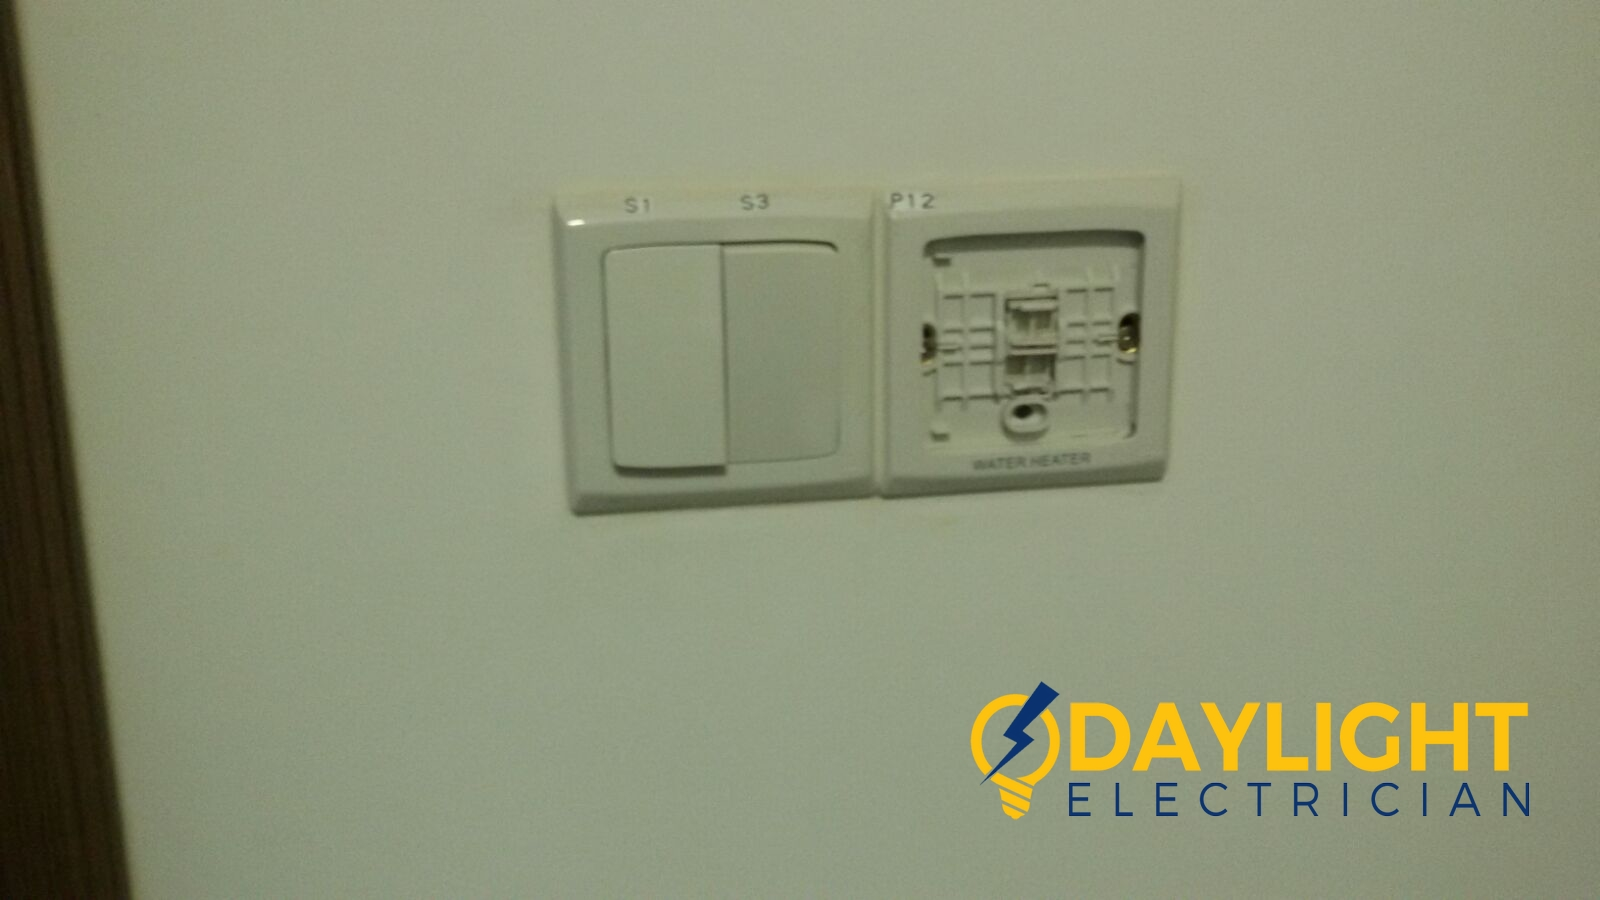 Replace-water-heater-switch-electrician-singapore-condo-tampines-flora-drive-1